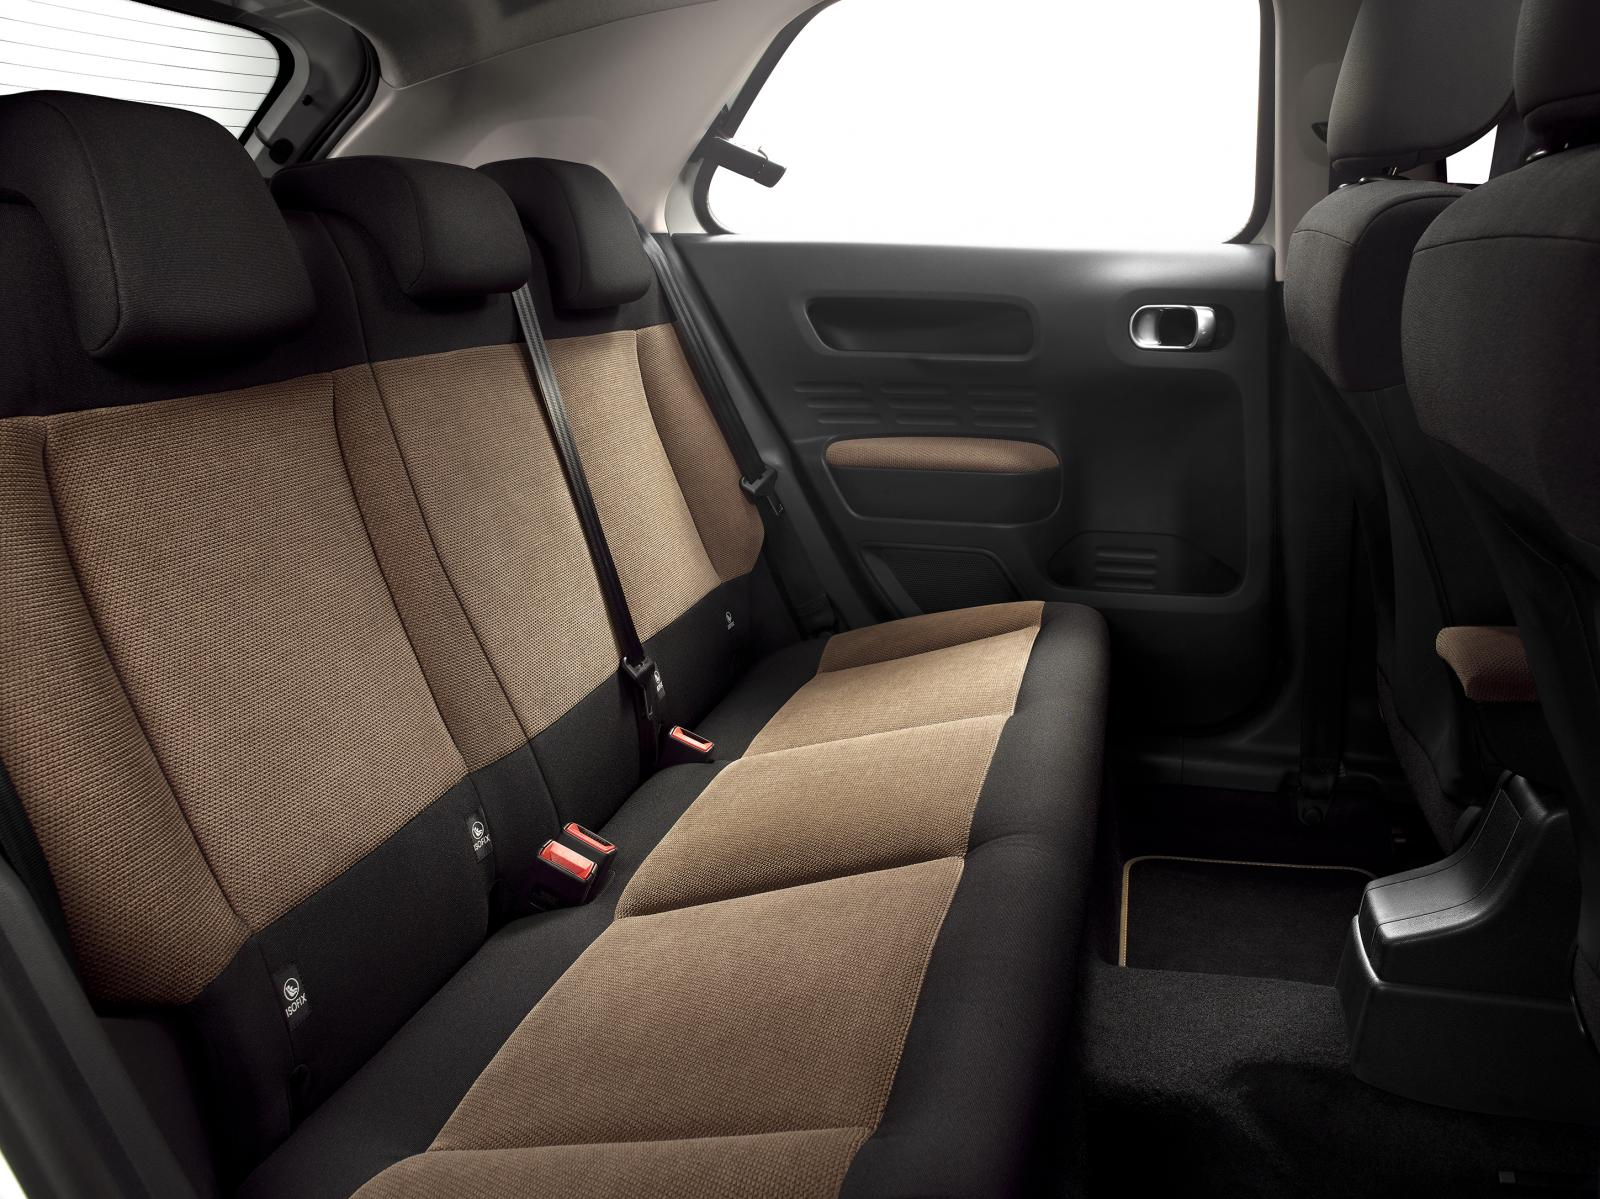 C4 Cactus Shine edition 2014 backseat